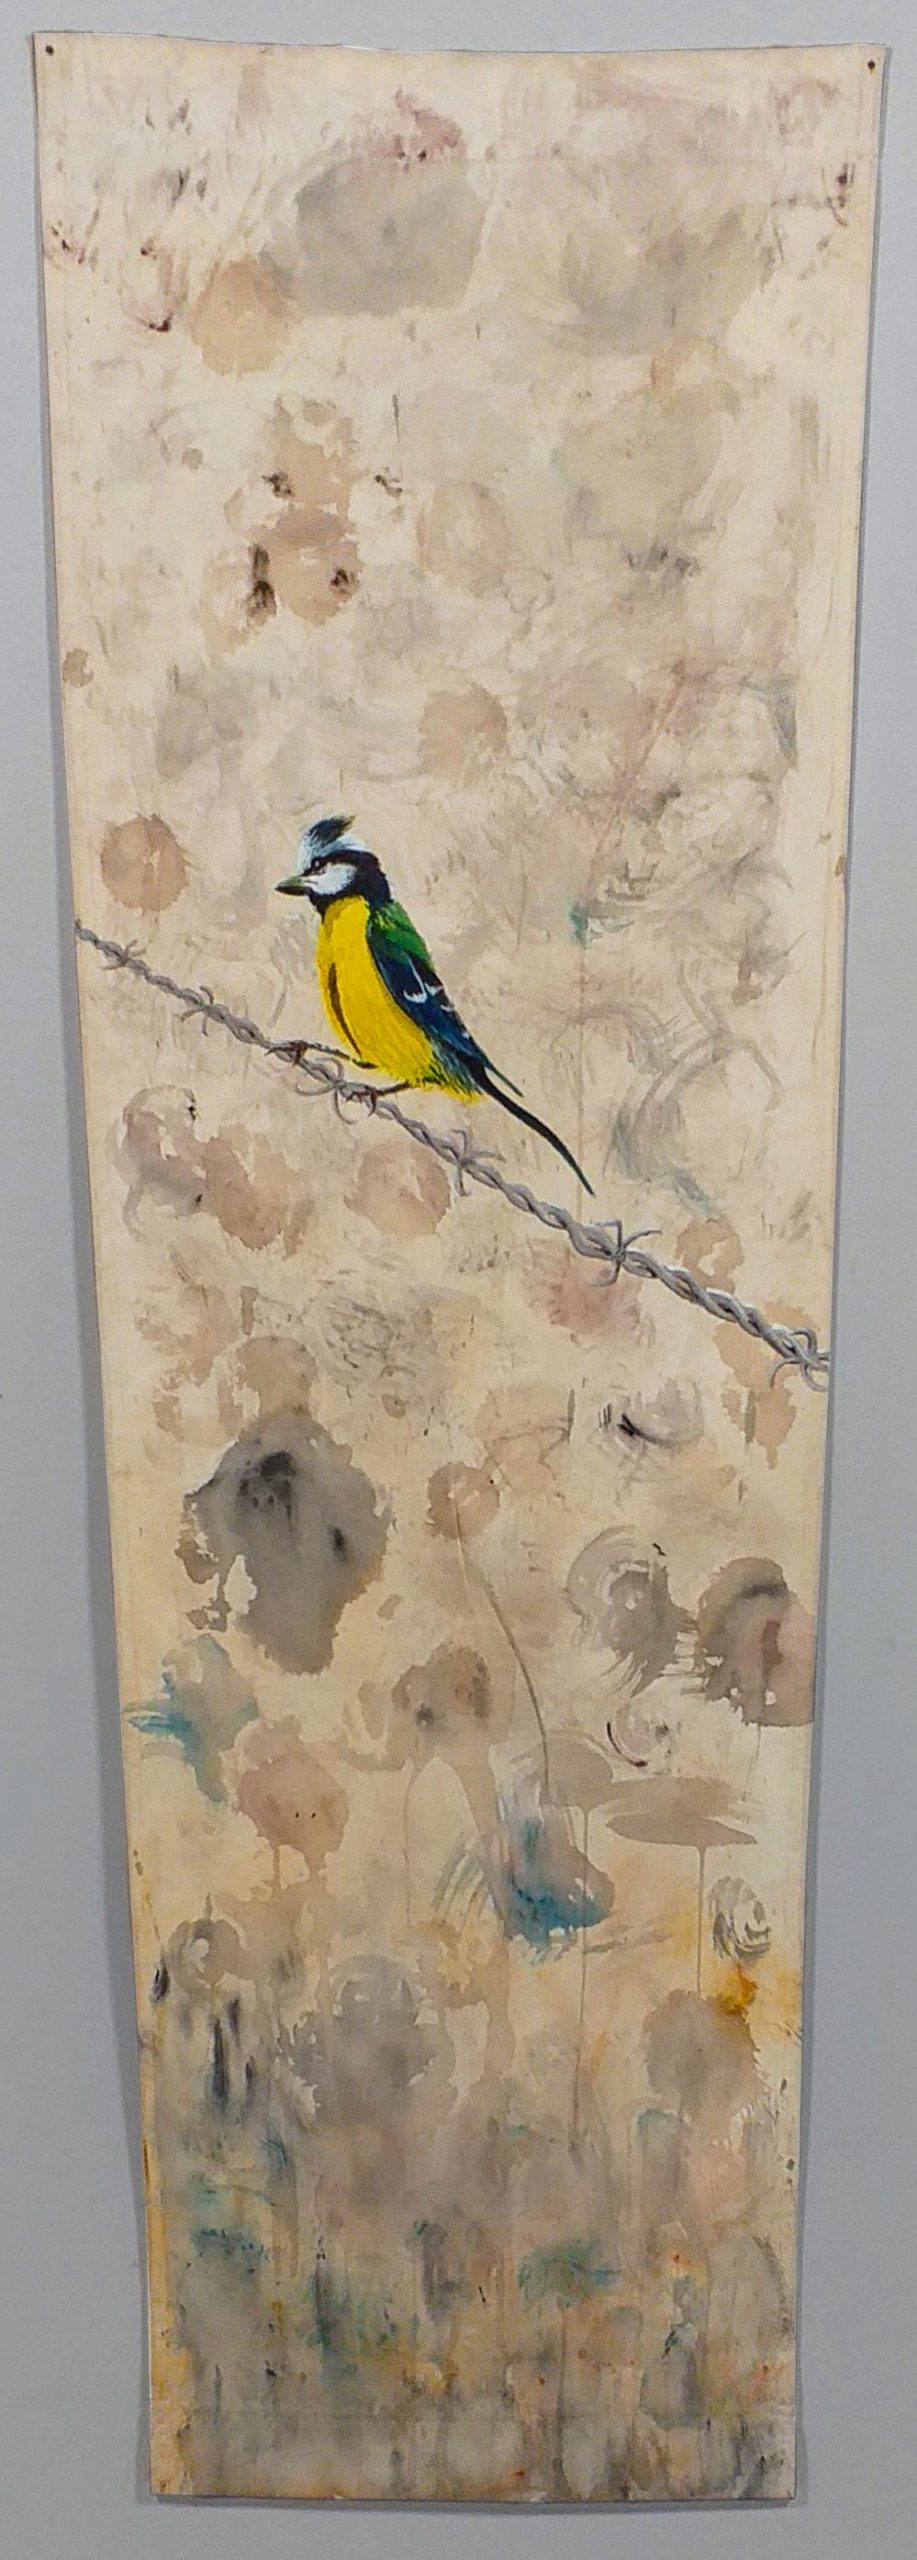 Painting birds on canvas of beach hammocks by visual artist Guillermo del Valle